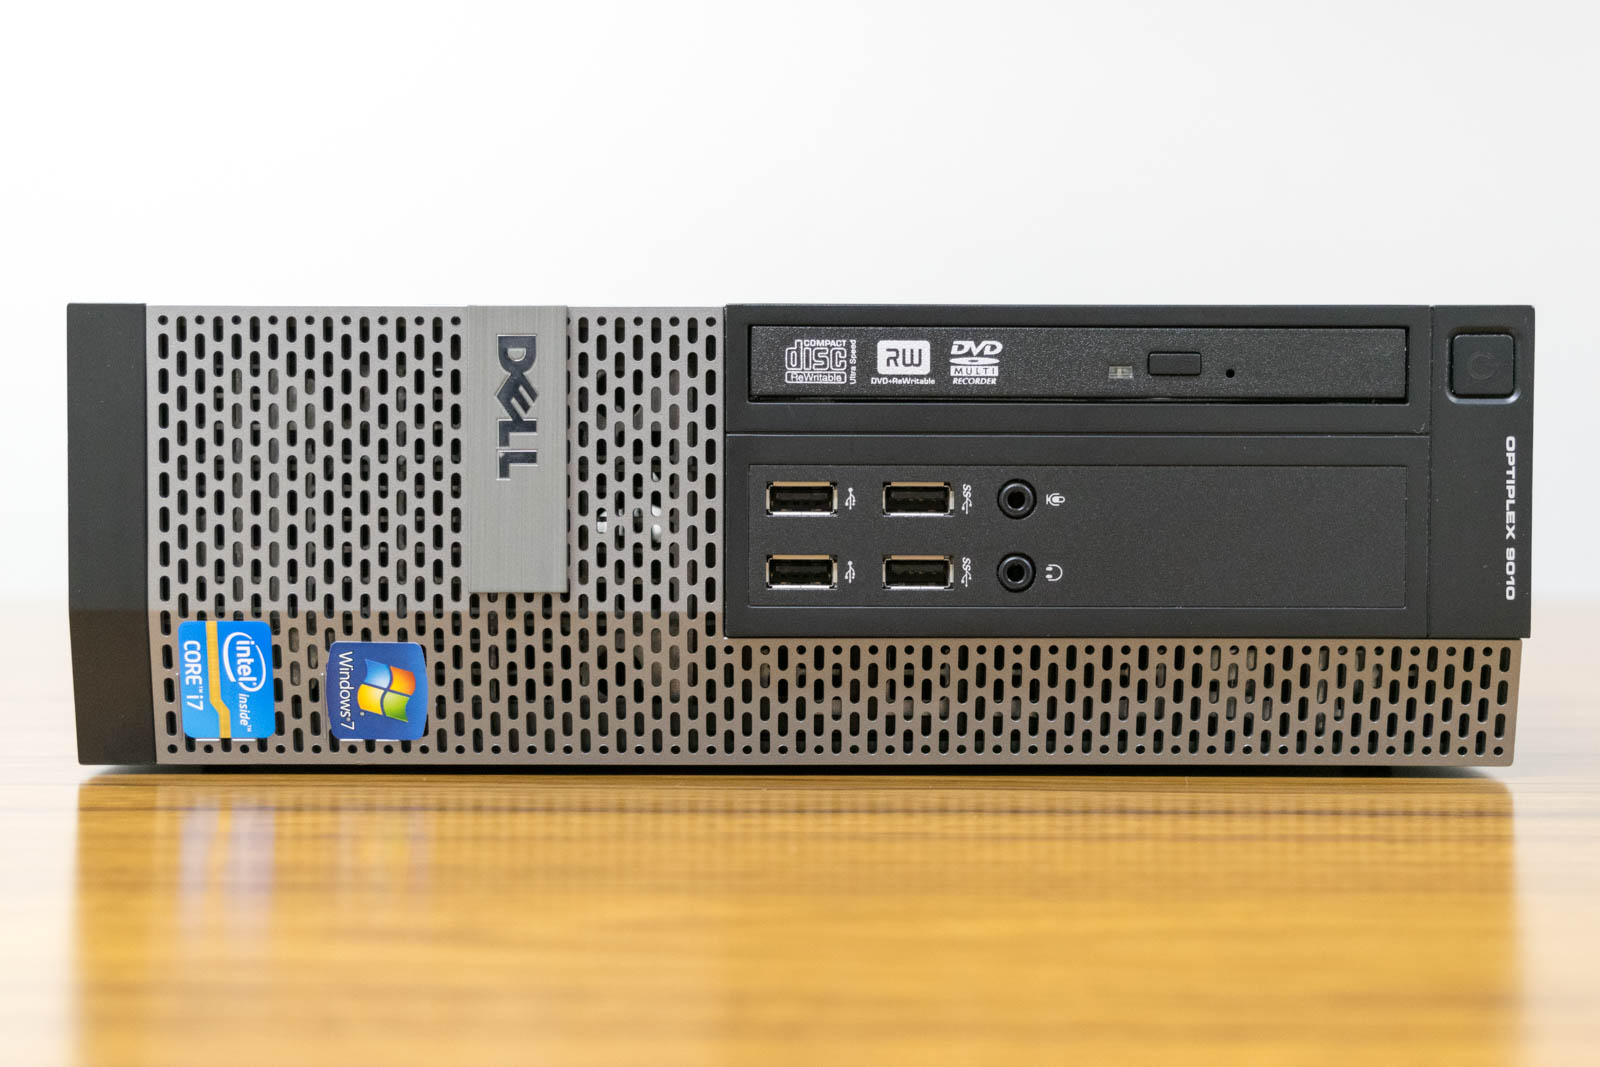 DELL OptiPlex 9010 スモールフォーム, Windows 7 Professional 64bit, Core i7-3770, メモリ8GB(2GBx4), 500GB HDD 【中古】